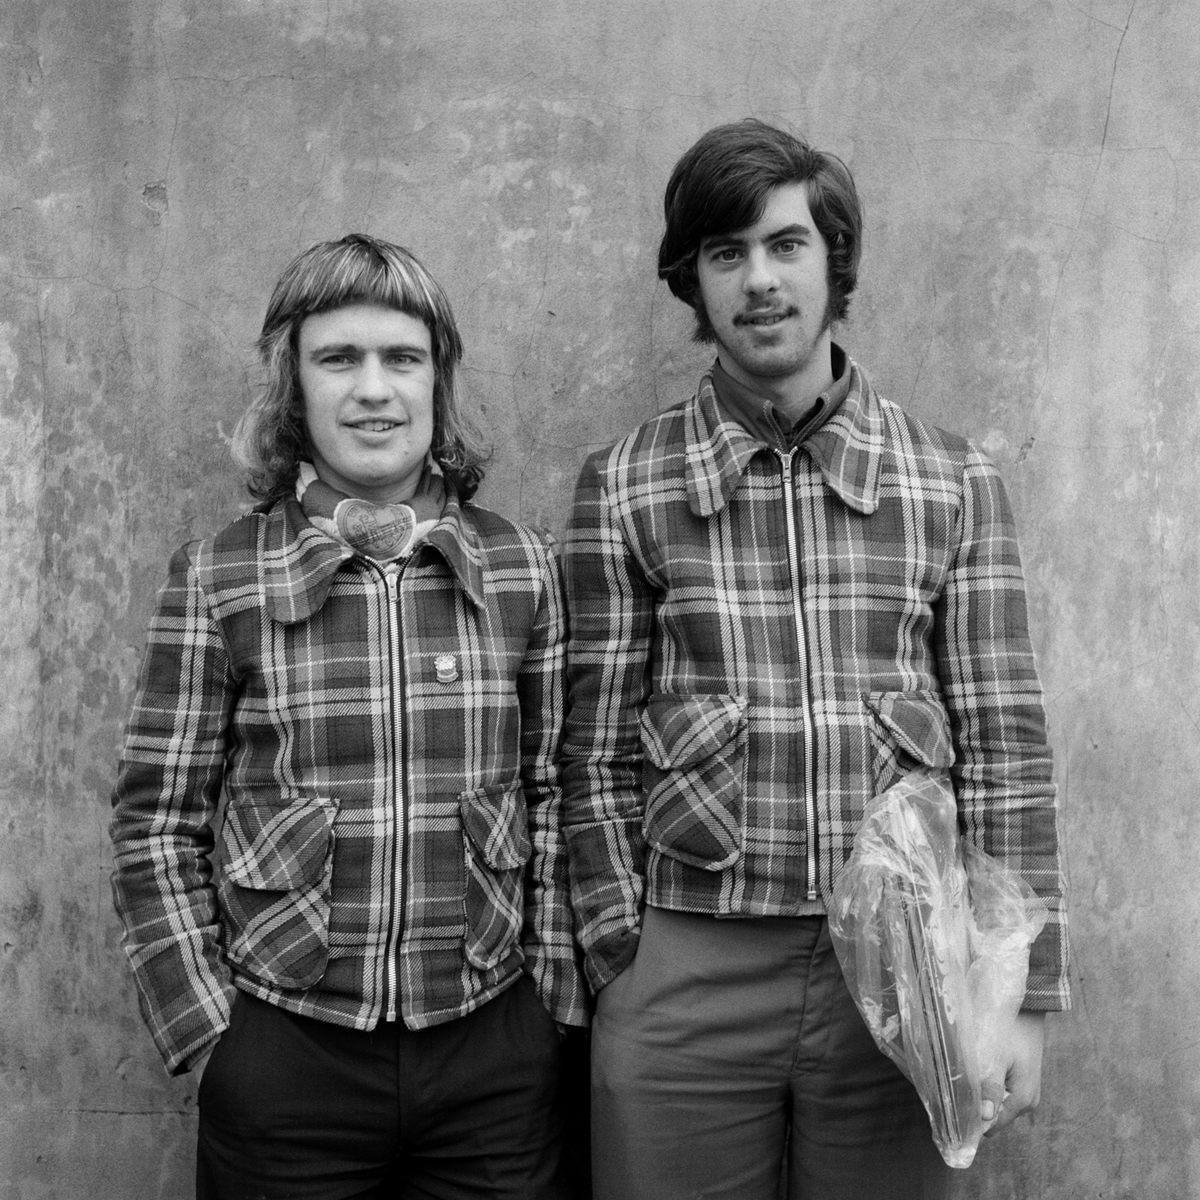 Portraits from the Free Photographic Omnibus 1973-74